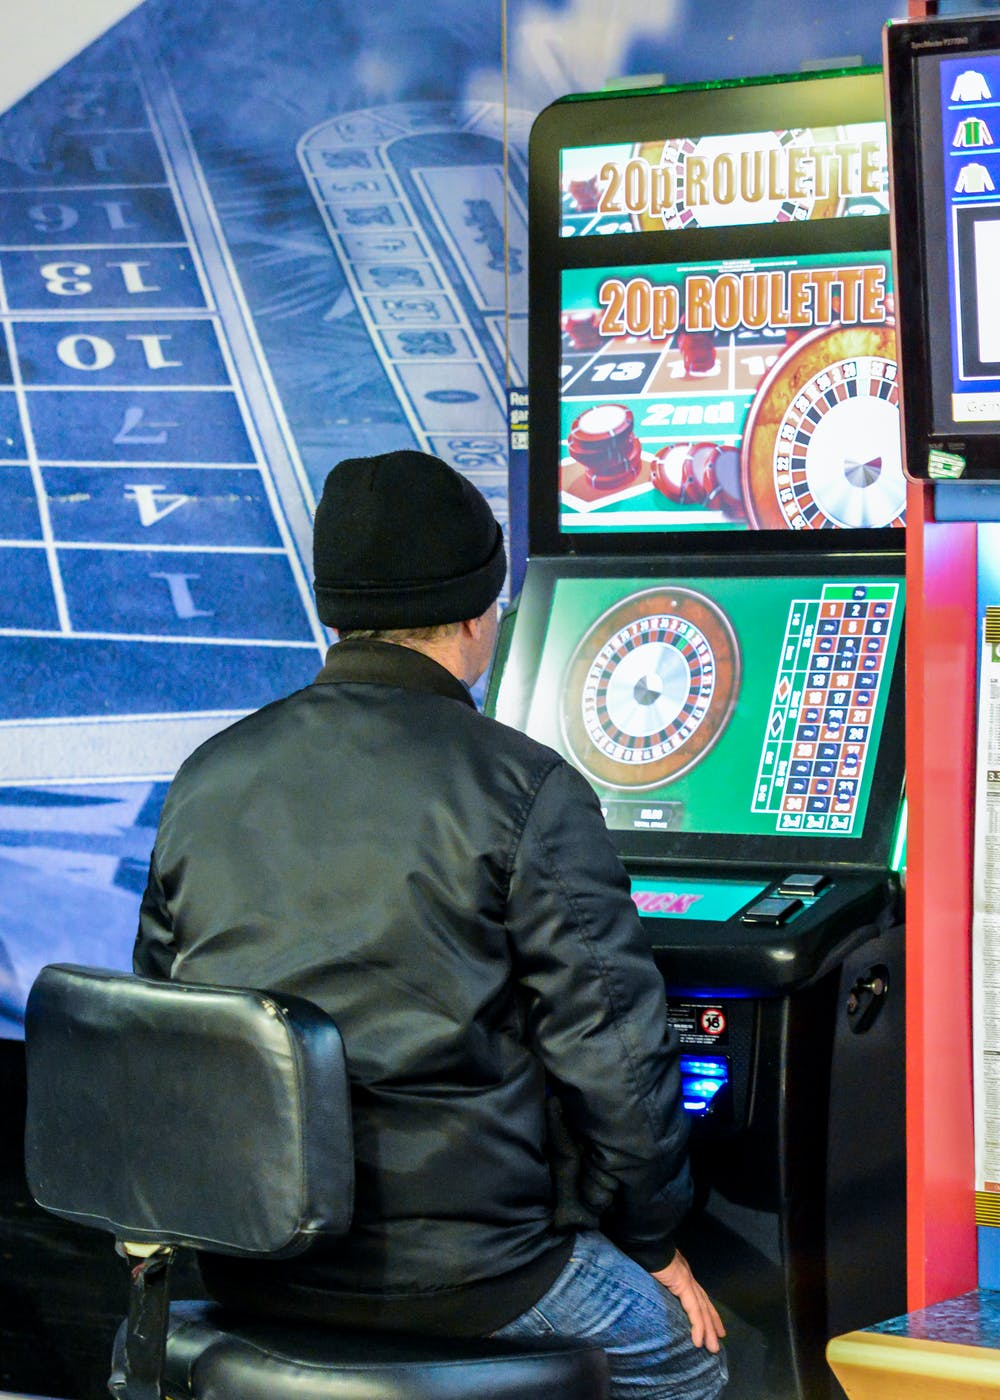 What does gambling addictions lead too